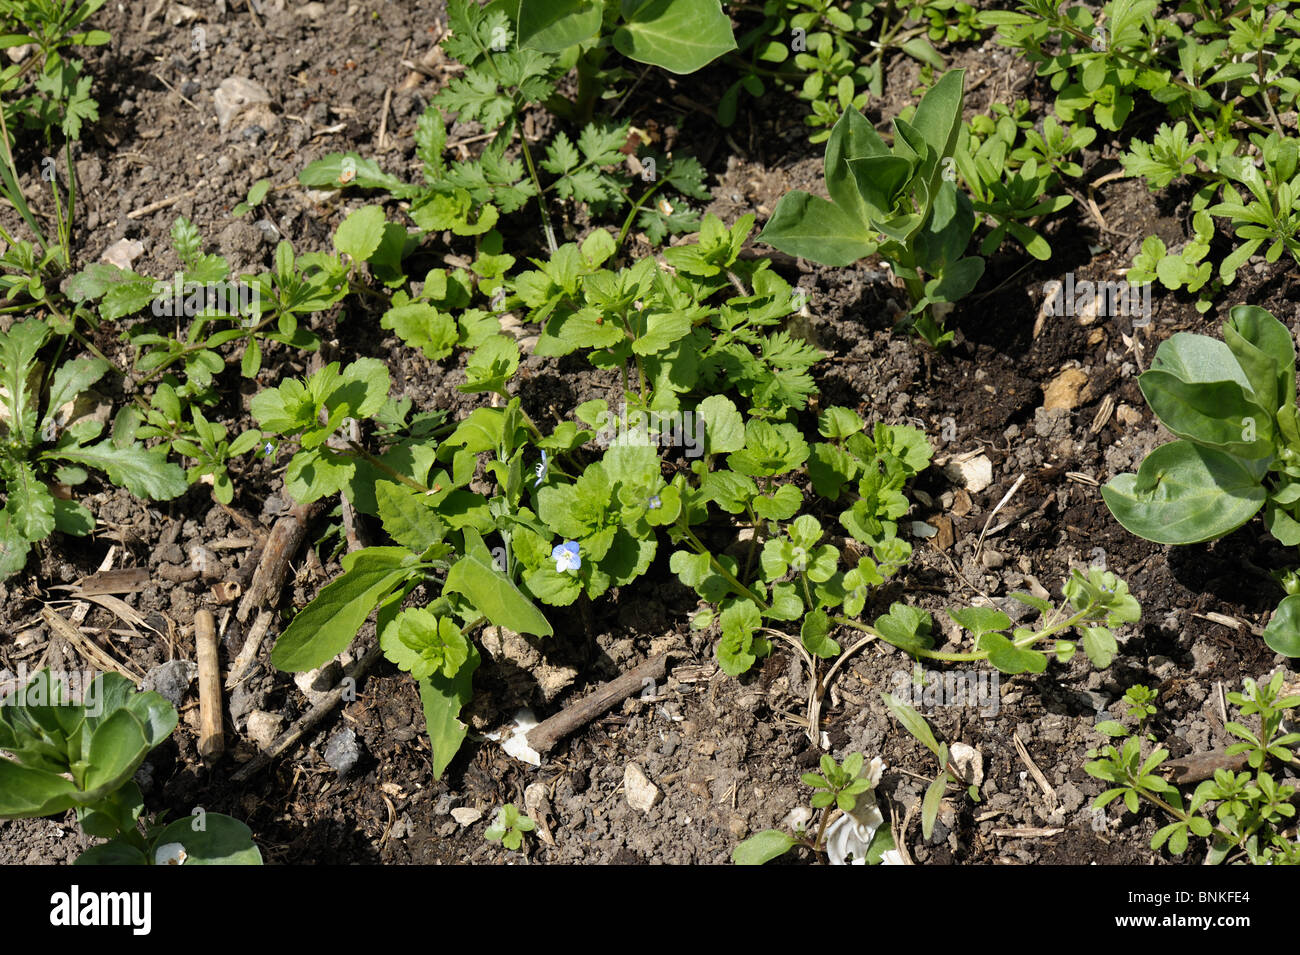 Broad-leaved weeds among young beans in a garden vegetable patch, Devon - Stock Image